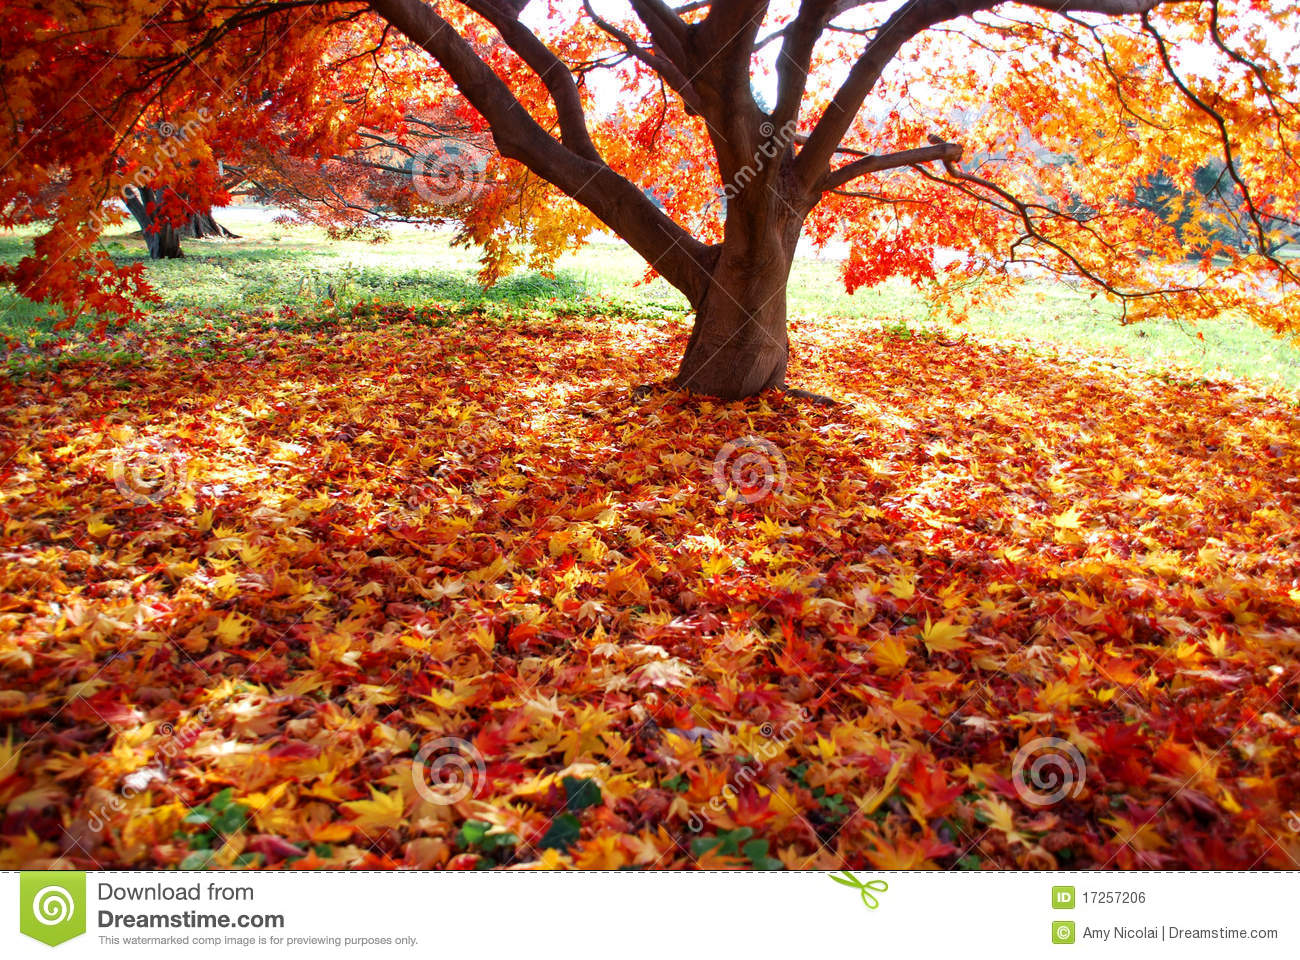 Falling Leaves Wallpaper Free Download Colorful Carpet Of Fallen Leaves Royalty Free Stock Image